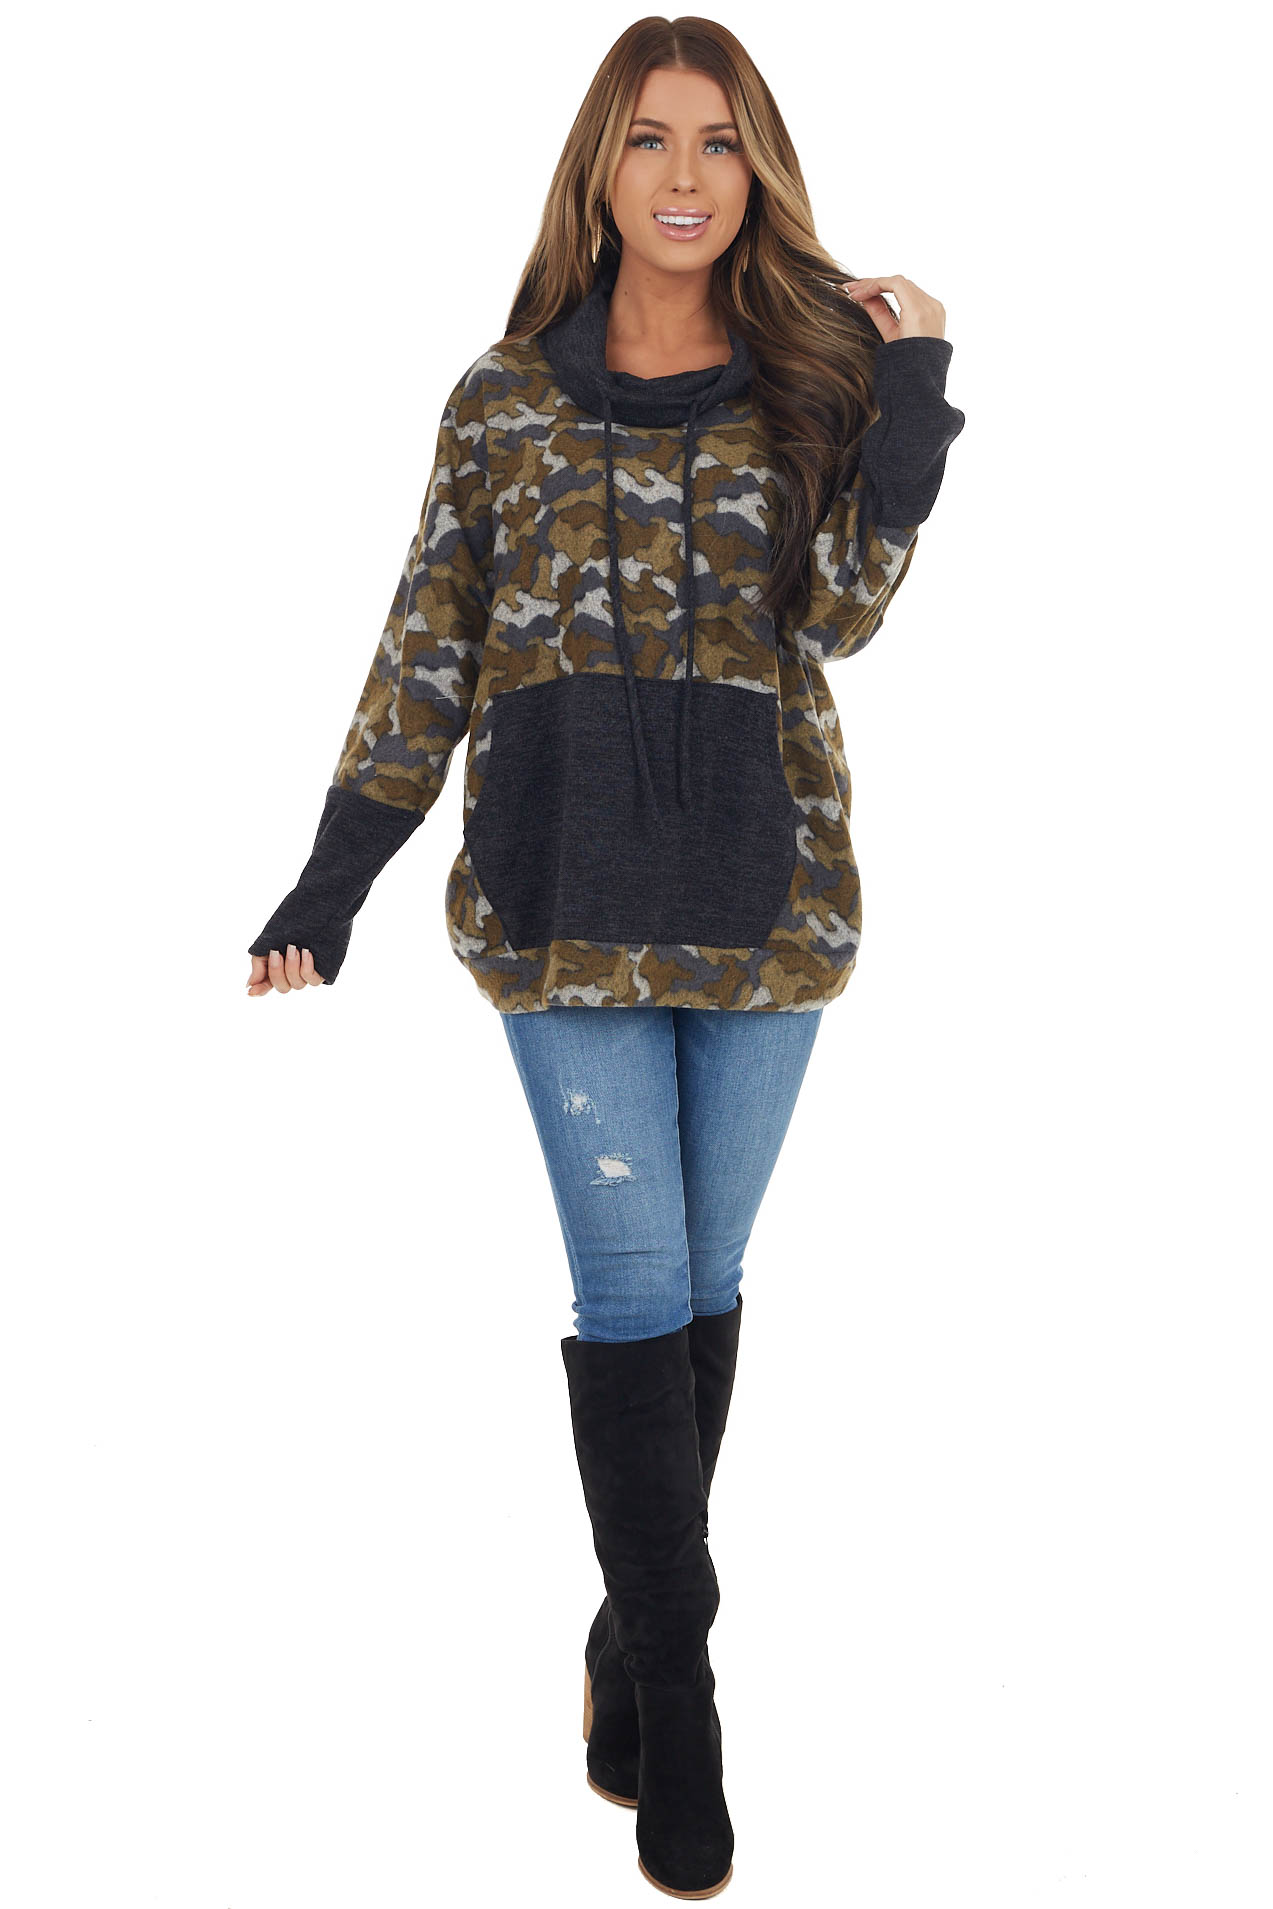 Olive Camo Print Pullover with Cowl Neck and Kangaroo Pouch